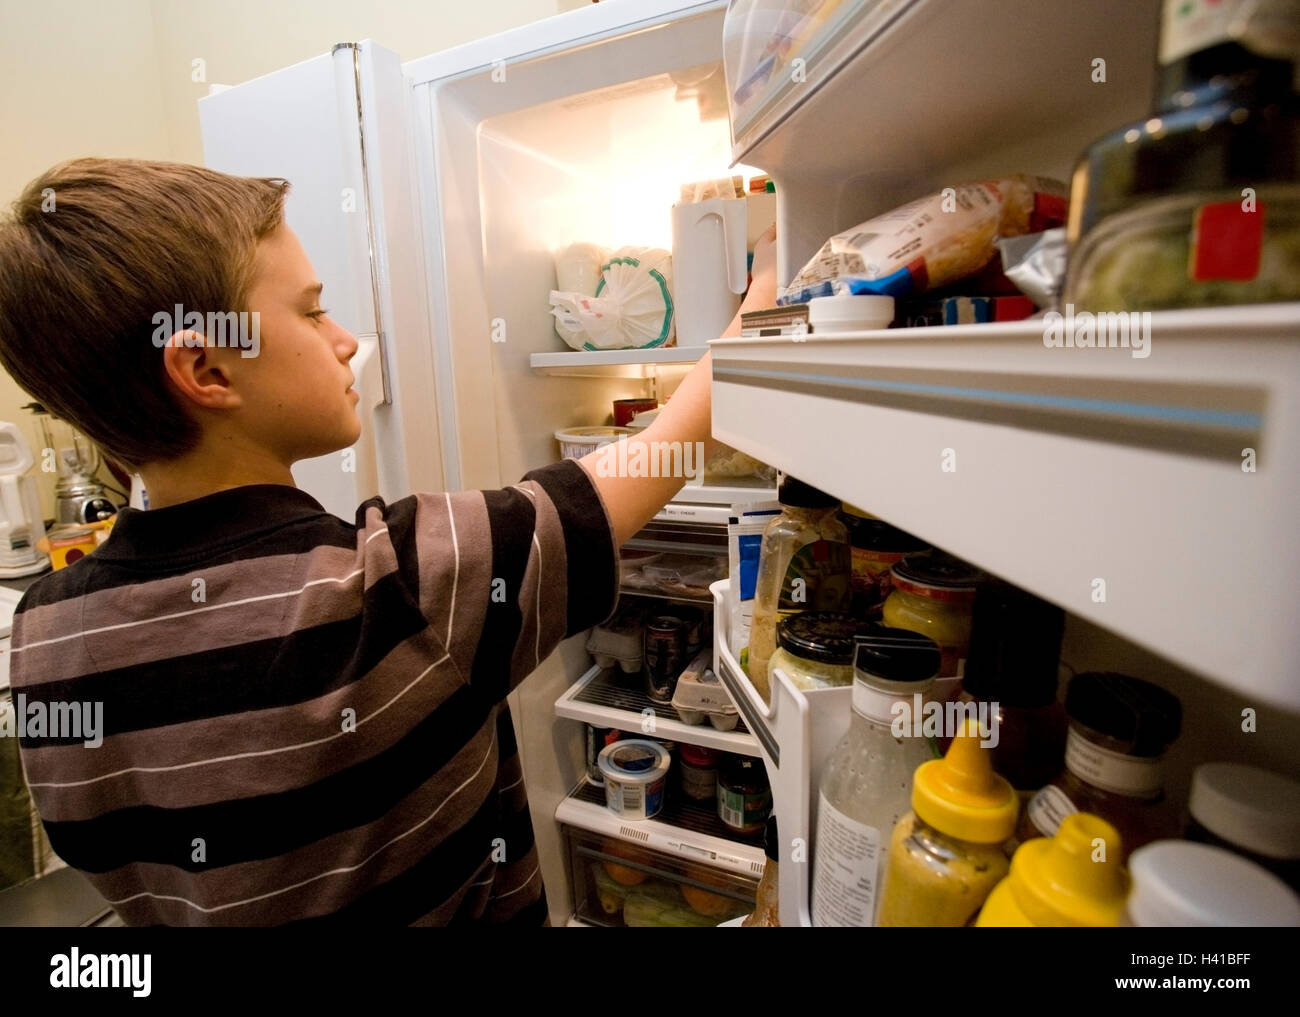 boy looking in refrigerator - Stock Image